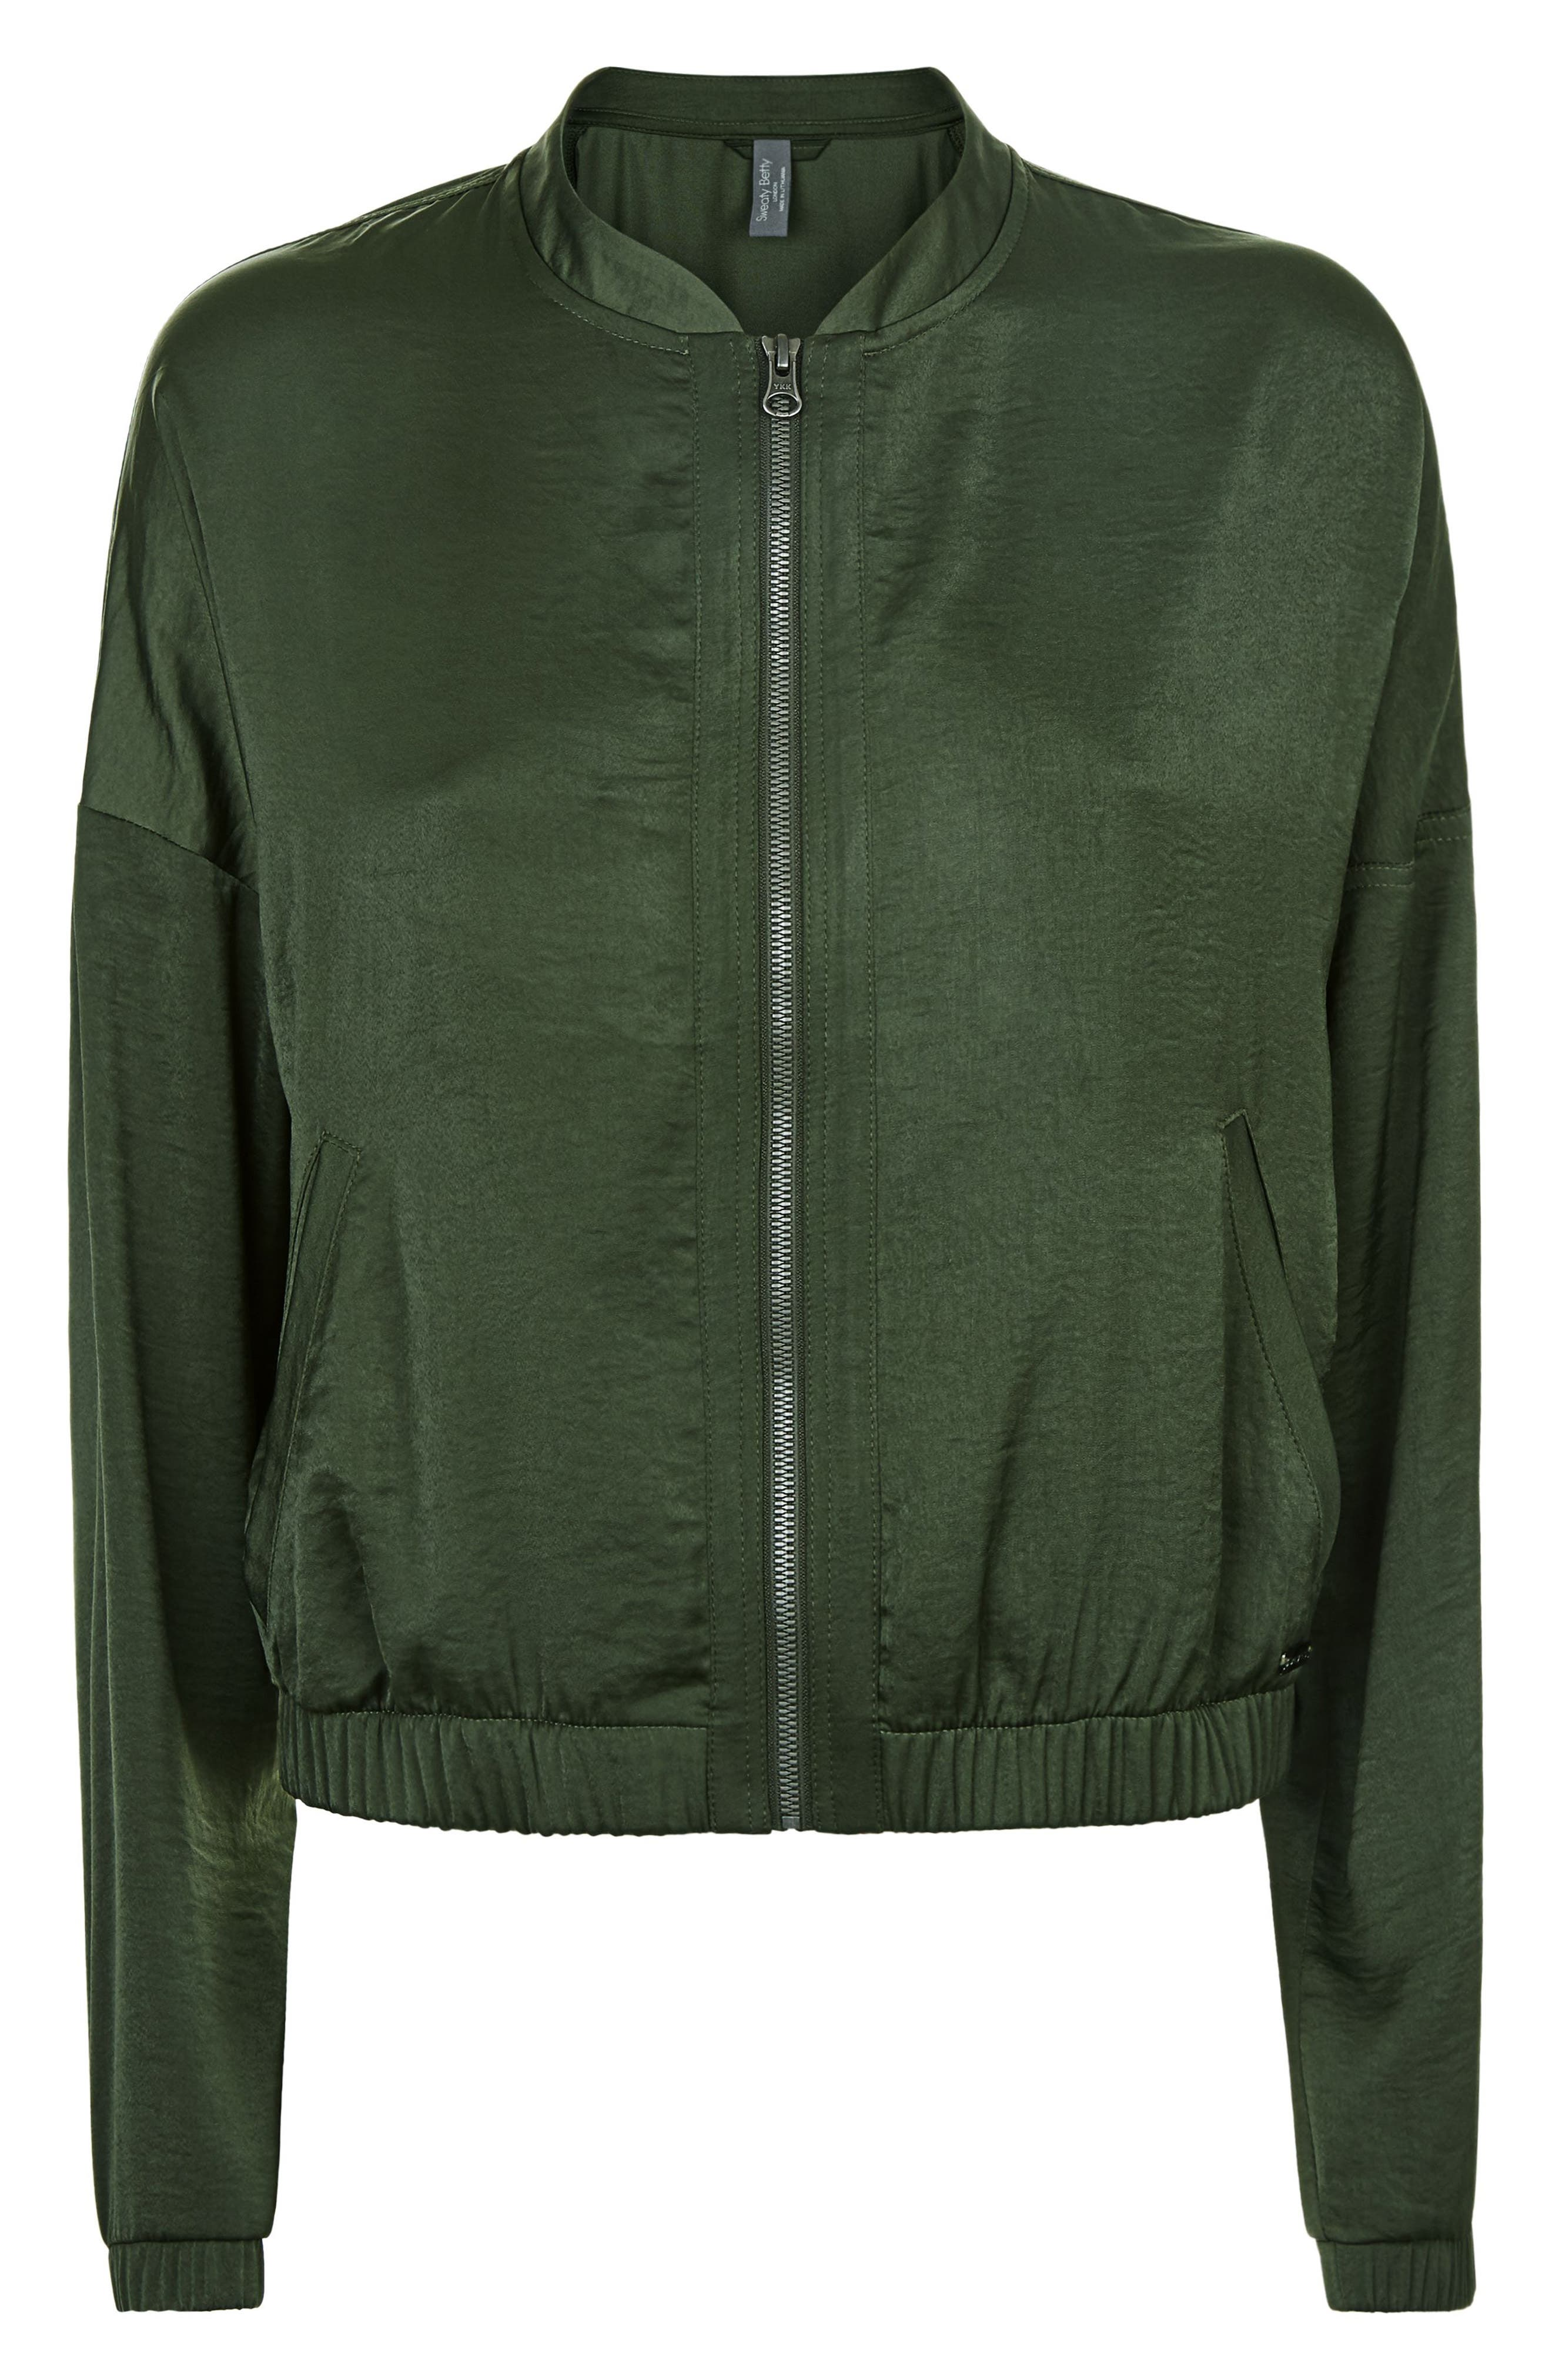 Cargo Luxe Jacket,                             Alternate thumbnail 5, color,                             OLIVE